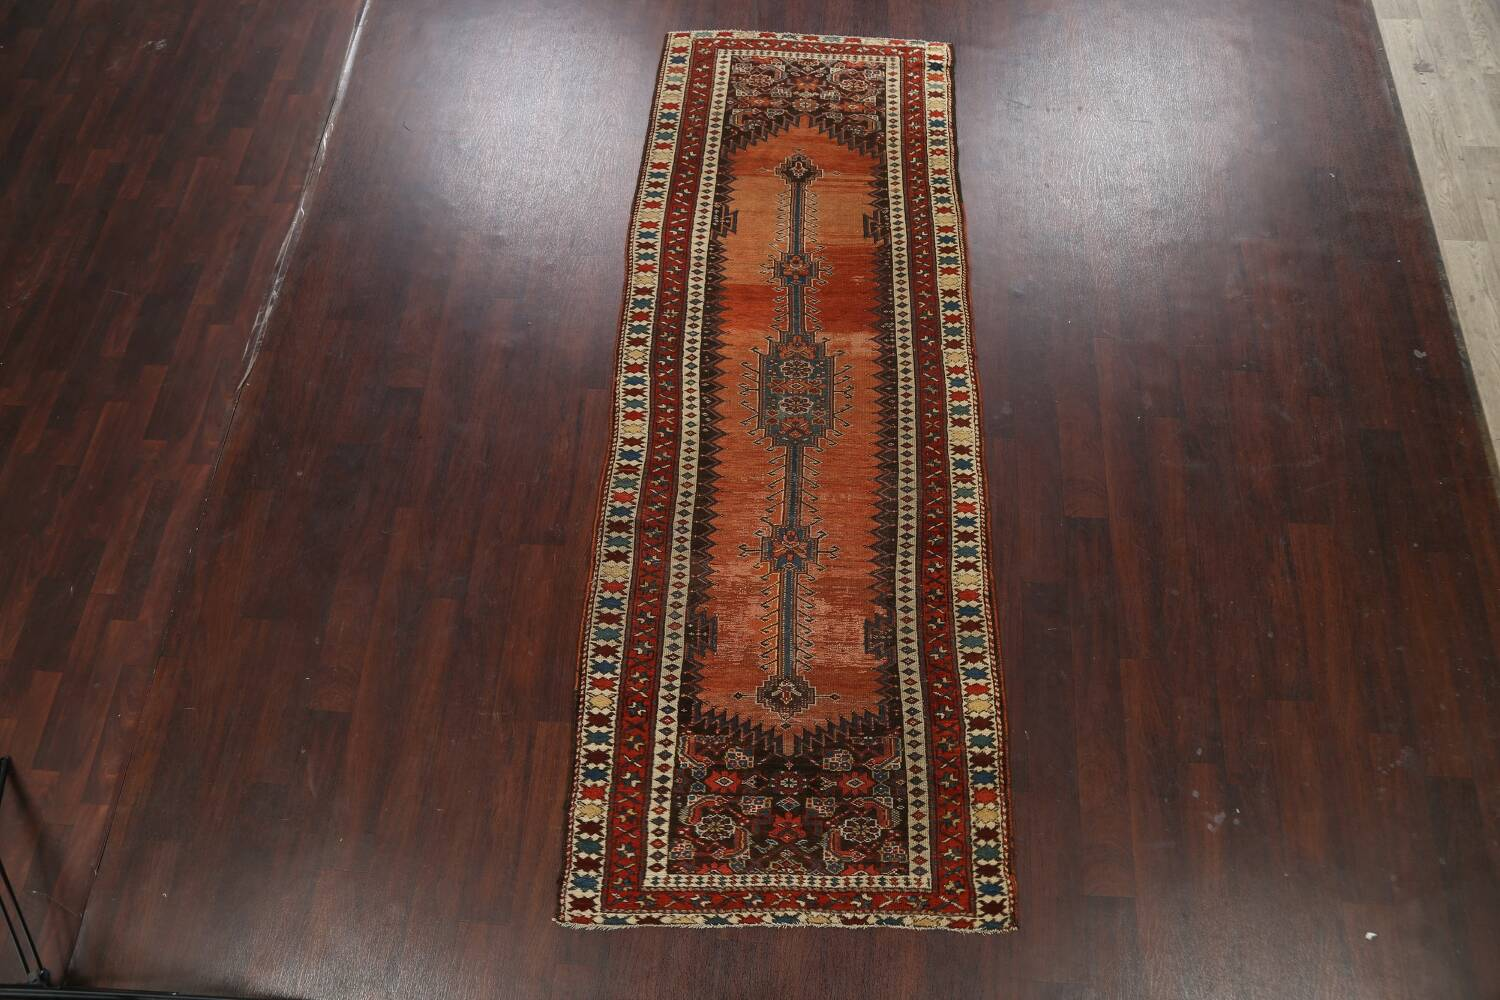 Pre-1900 Antique Vegetable Dye Malayer Persian Runner Rug 4x10 image 2